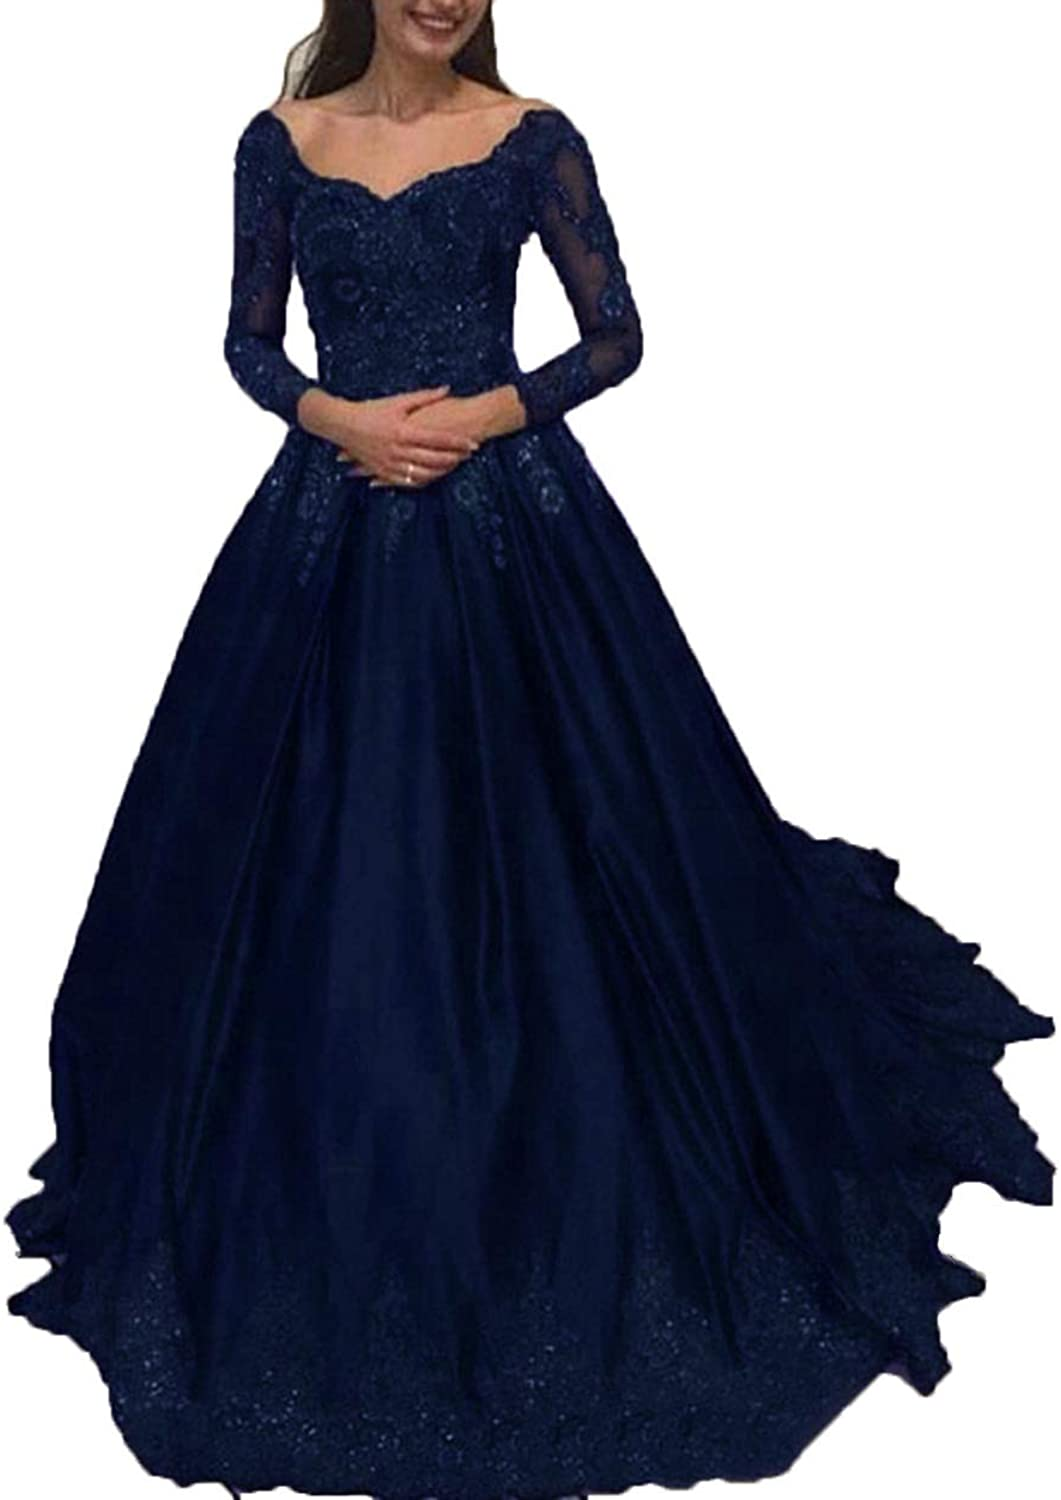 WIYMSHZ Beaded Prom Dresses 2019 Lace Illusion Long Sleeves Satin Ball Gown